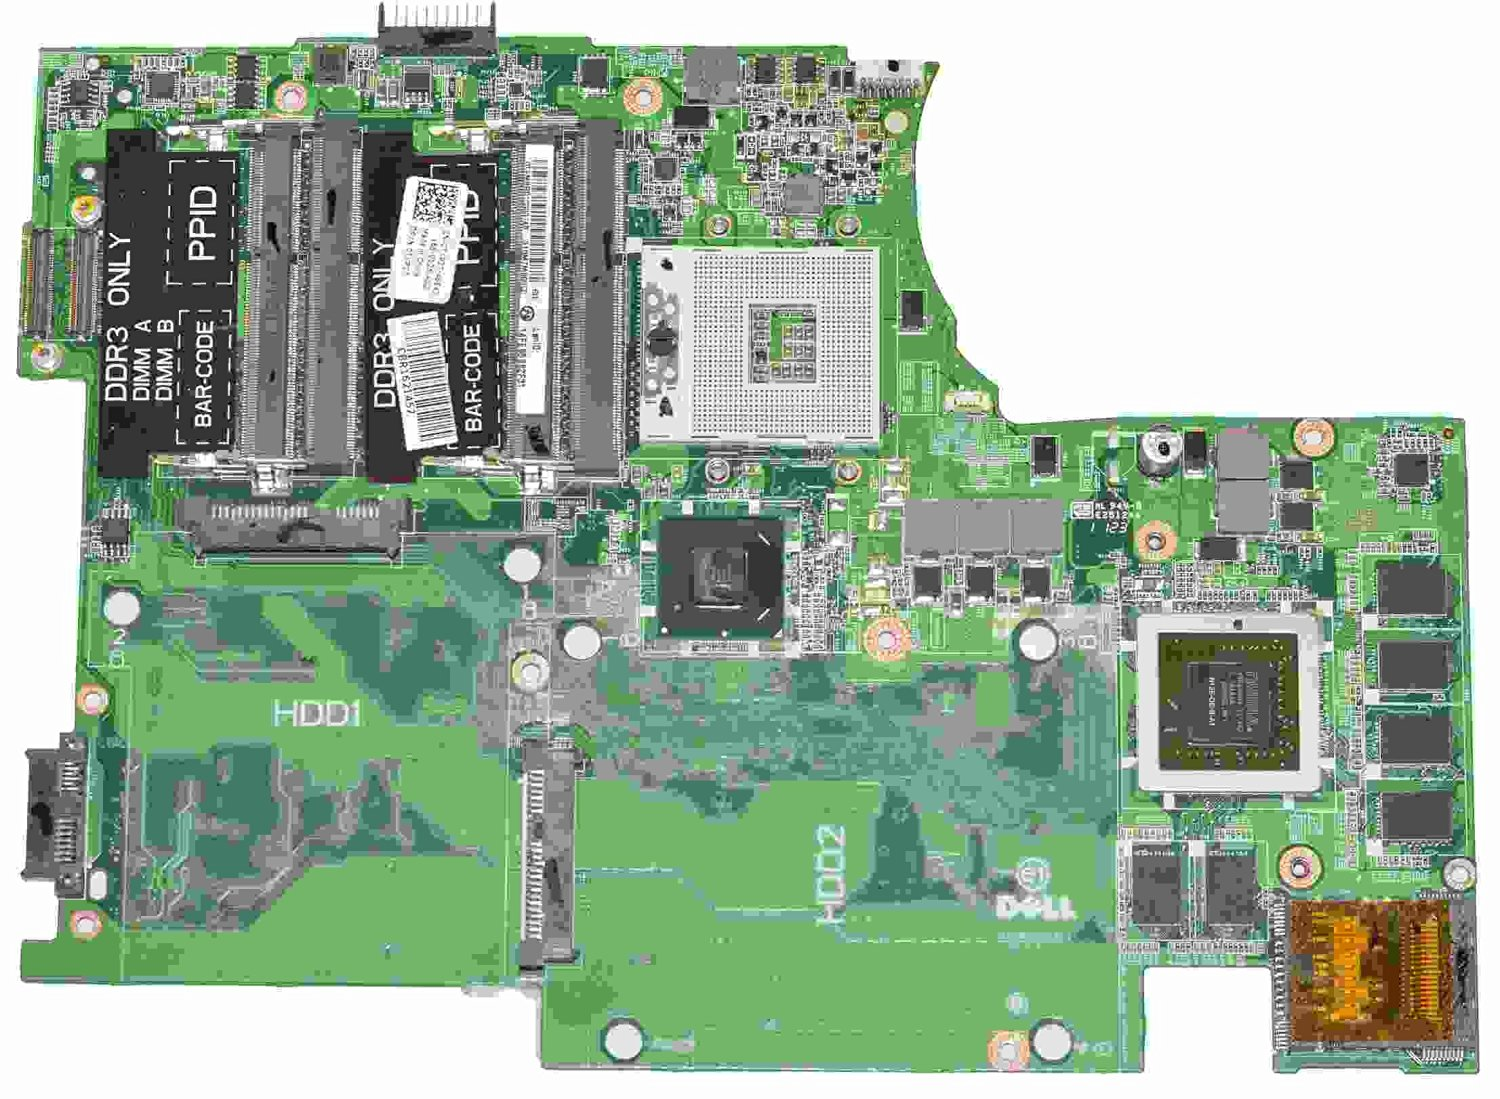 Cheap Dell Xps 17 L702x Laptop Find Deals Alienware M15x Power Button Circuit Board With Cable W 1 Year Get Quotations Txp27 Intel Motherboard Nvidia Gt555m 3gb S989